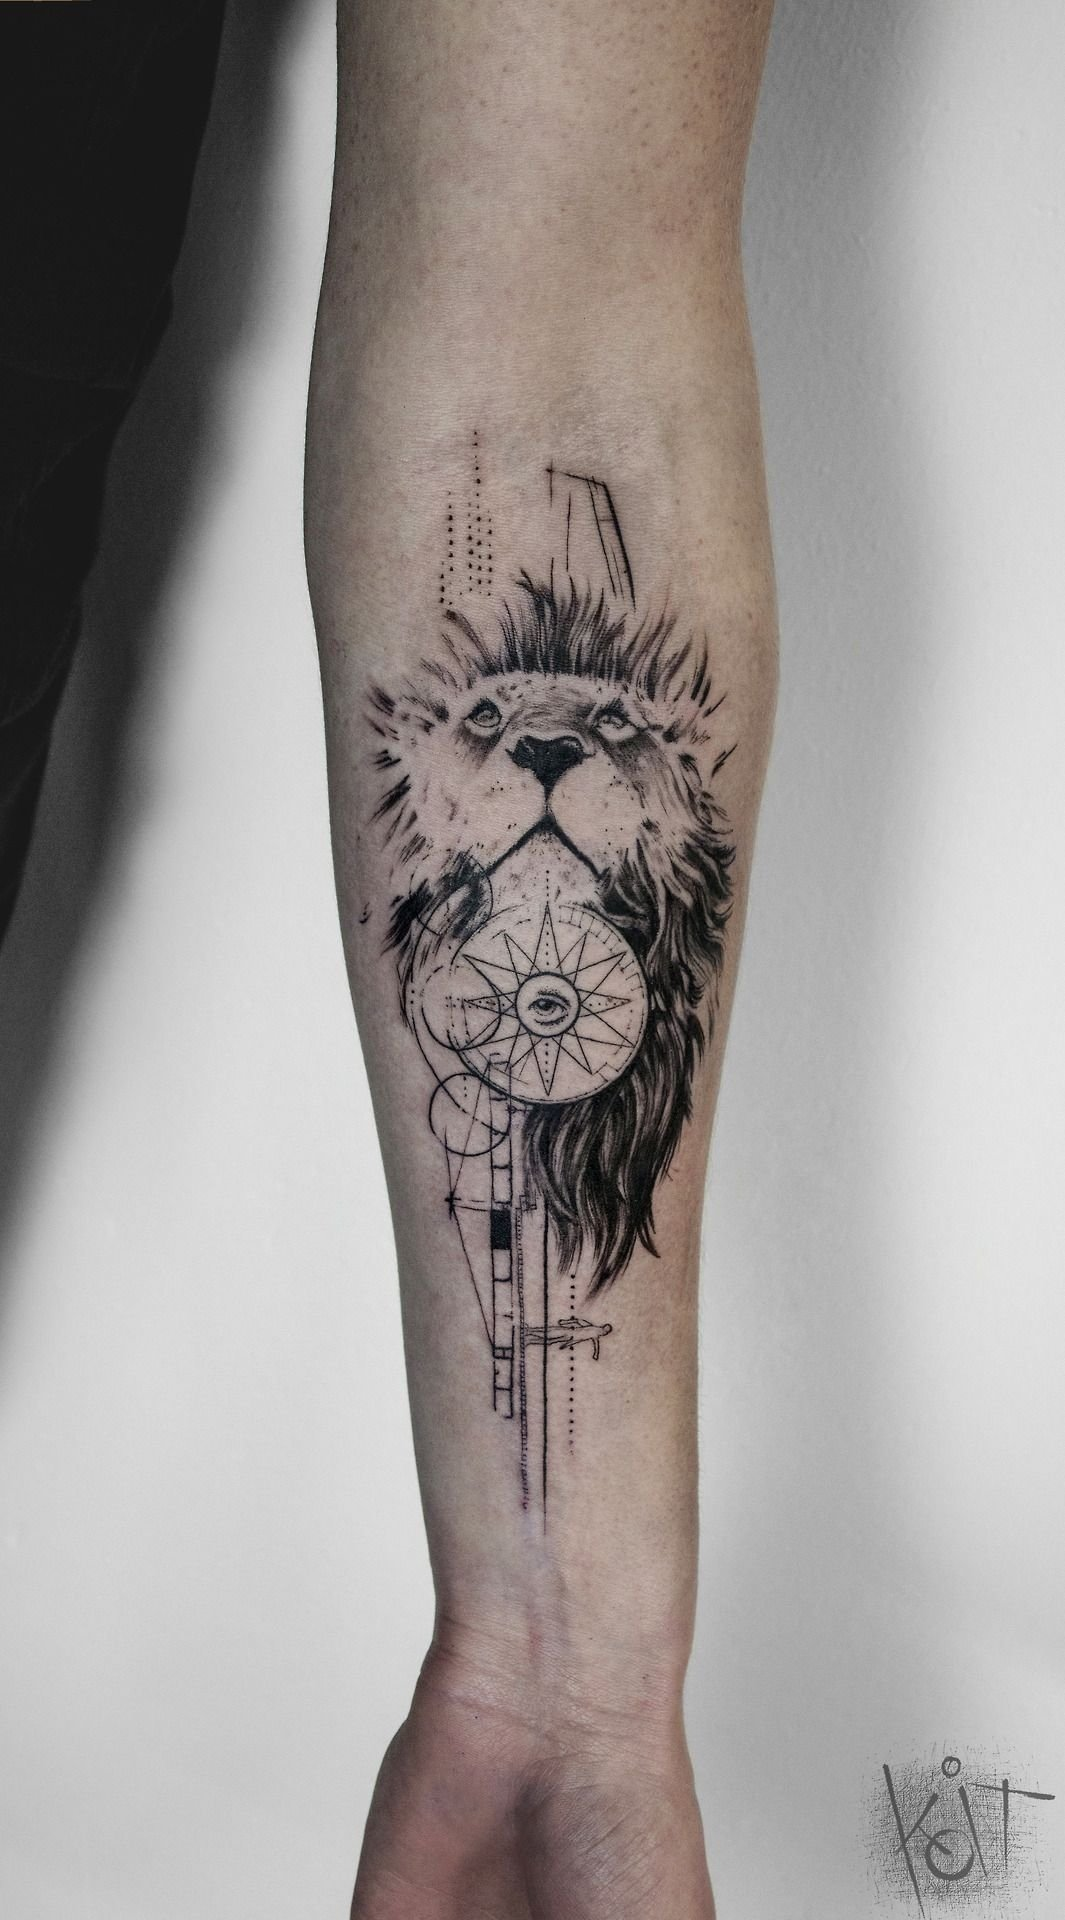 10 Unique Arm Tattoos Ideas For Guys by koit berlin forearm black tattoo lion compass and illuminati